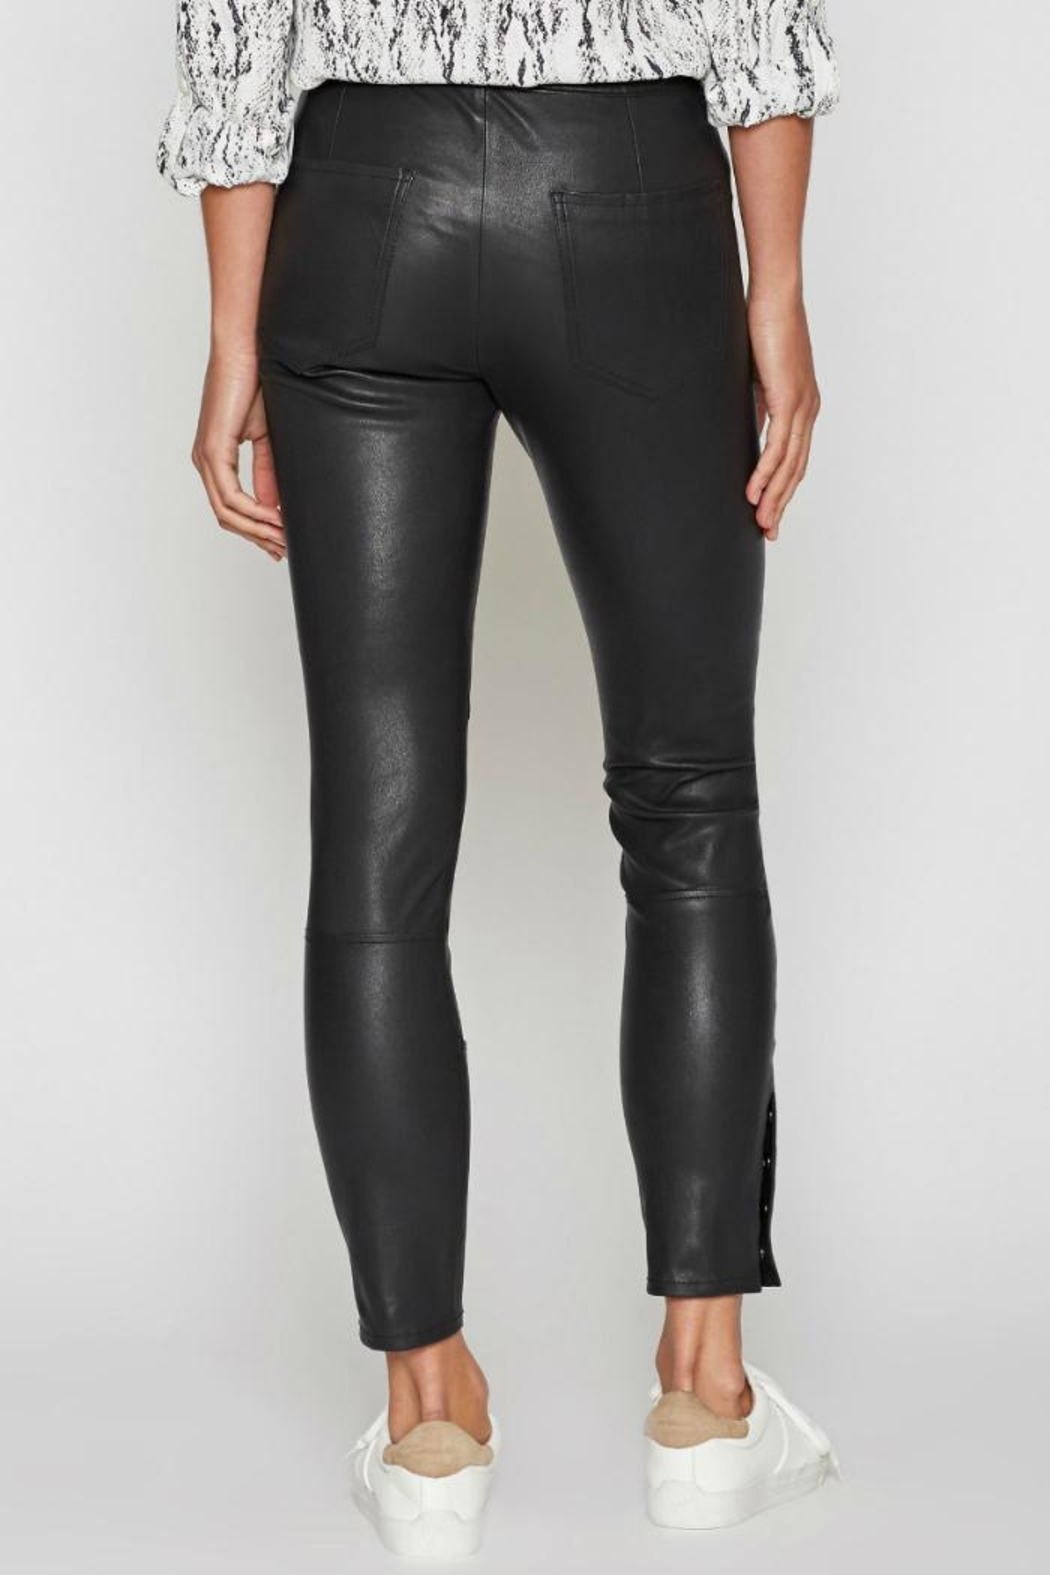 Joie Darnella Leather Pants - Side Cropped Image